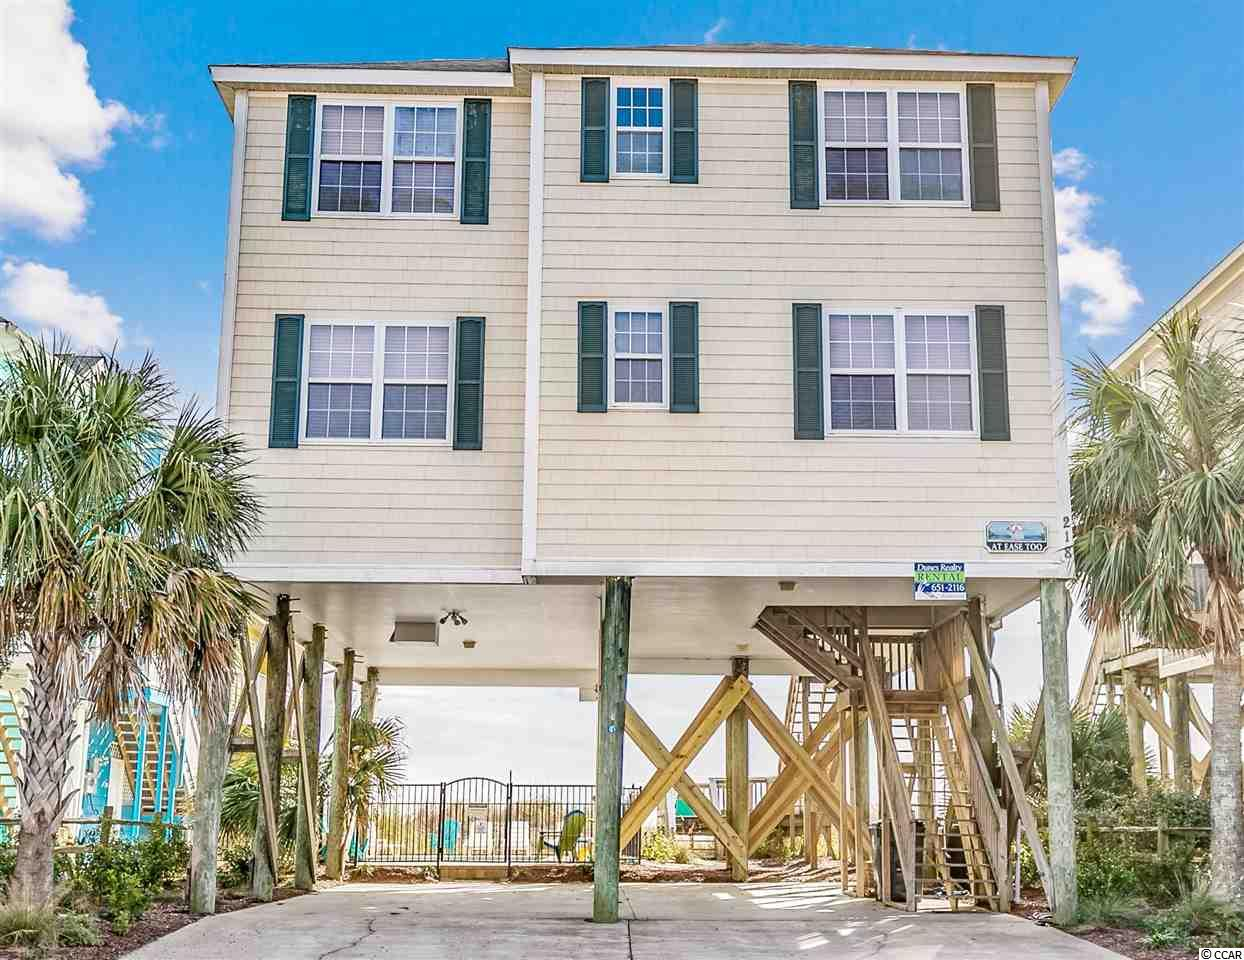 218 North Waccamaw Drive, known as At Ease Too, is located oceanfront in Garden City Beach. The home is six bedrooms, six bathrooms, measures 2544 heated square feet and comes with a private heated pool. The interior is well maintained, and the owner has made improvements that will make this raised beach house feel like a home. On the main level, there is a large oceanfront kitchen, dining area, and living room that leads to a screened-in porch offering access to your private beach access. The well-appointed kitchen is highlighted by granite countertops and white cabinets. There are also two bedrooms, two full bathrooms. Upstairs you'll find an additional living room, four more bedrooms, and four full bathrooms. The master suite and living room have access to a second oceanfront screened-in porch. The exterior is wrapped in vinyl ceding shake siding, parking for at least six cars, and a fenced-in yard with pavers surrounding a new gunite pool. The property is situated on a recently re-nourished beach with multiple dunes and healthy sea oats. You're just steps north of the Garden City Pier, the small downtown restaurant district, and minutes to all Myrtle Beach has to offer. The home is currently on a vacation rental program and producing income that can offset the owner's carrying costs. The rental history is available upon request. Why continue to rent when you can own your very own beach retreat.